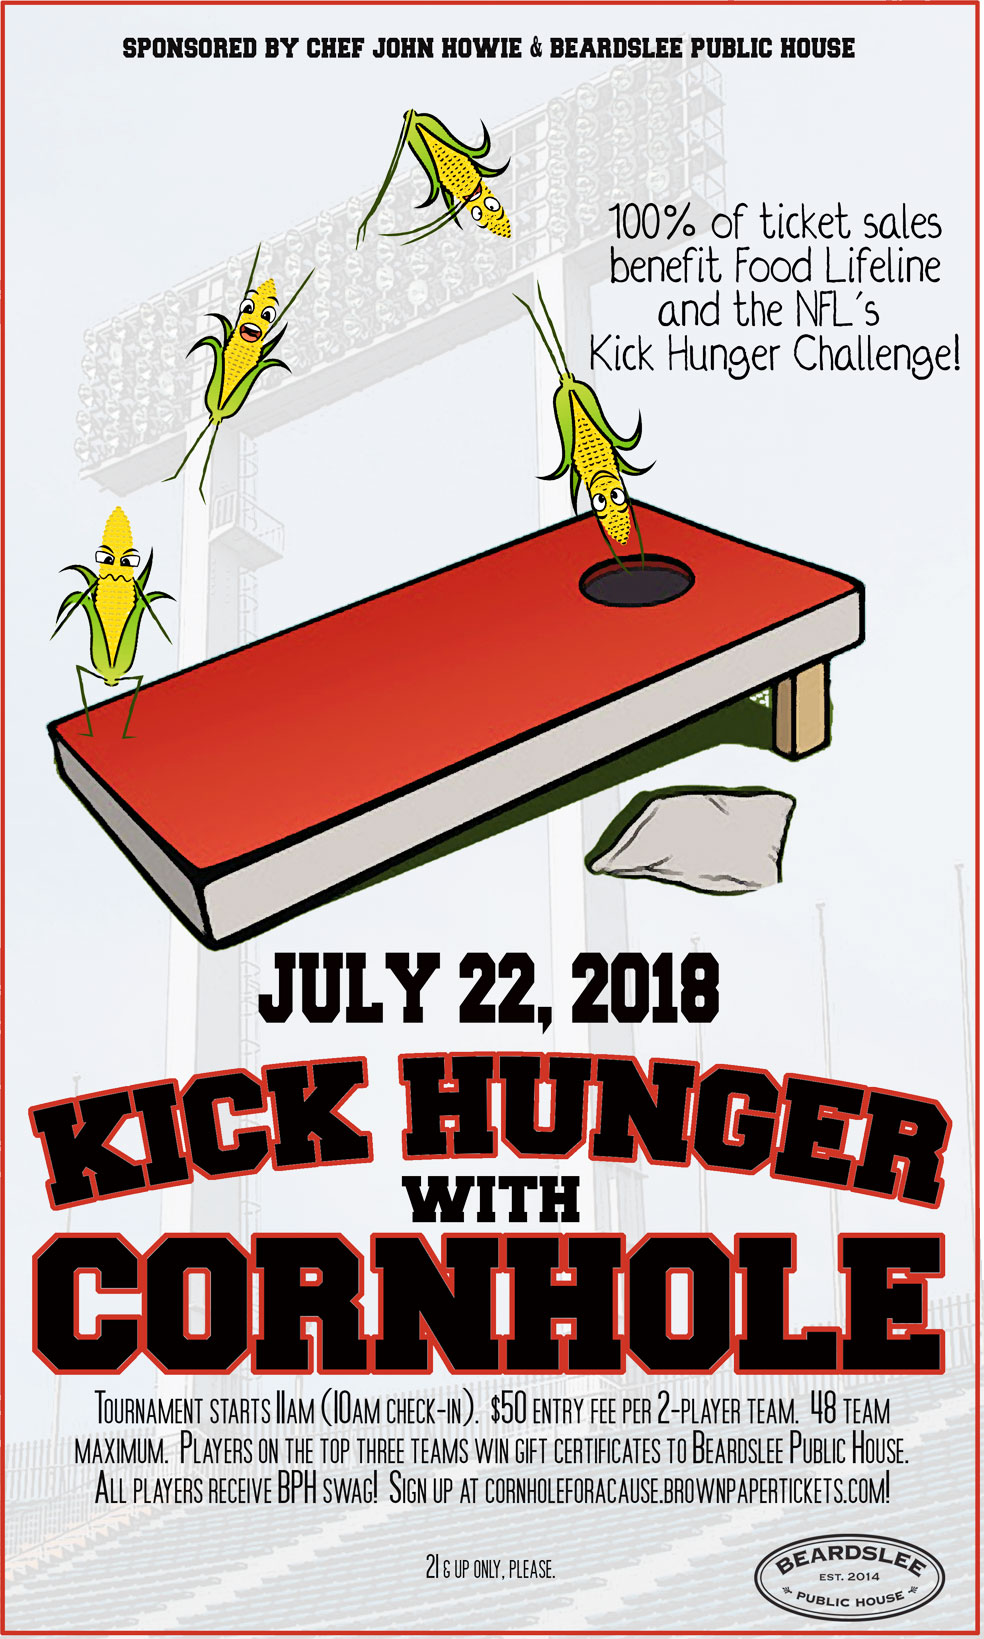 Cornhole Tournament Kick Hunger Challenge John Howie Beardslee